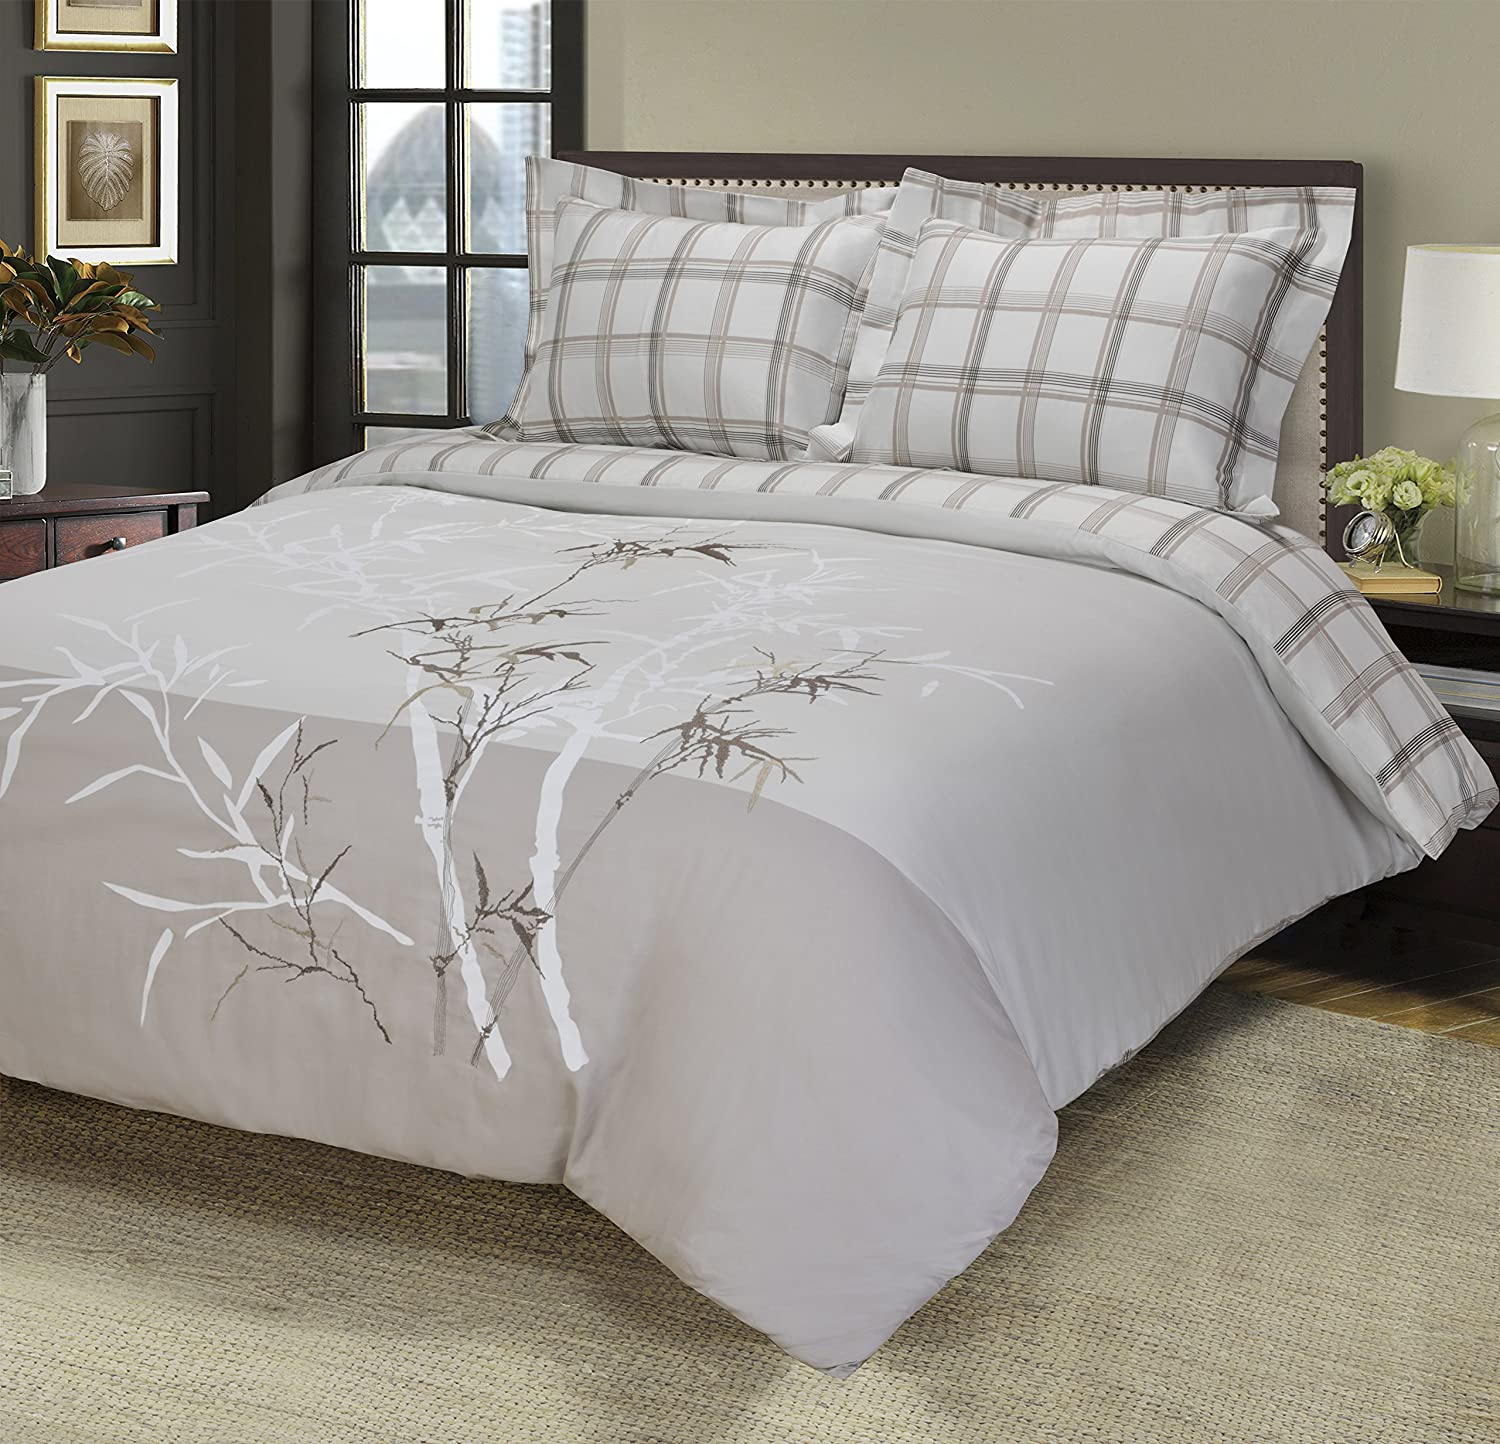 100% Cotton, 3-Piece King California King, Single Ply, Soft, Embroidered Elmwood Duvet Cover Set